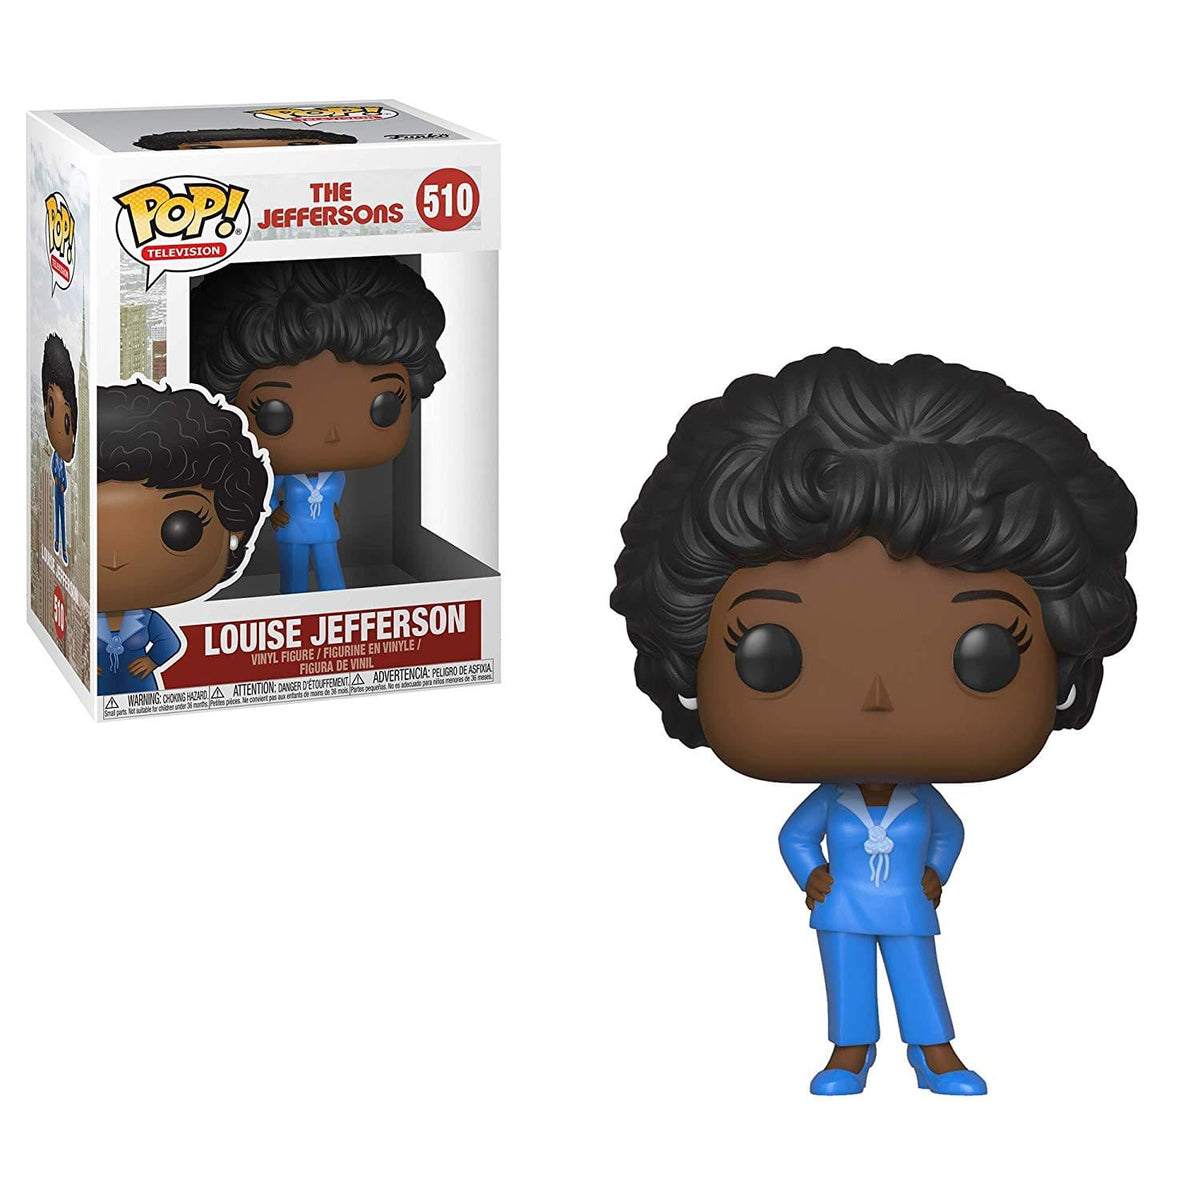 The Jeffersons Funko POP Vinyl Figure - Louise Jefferson